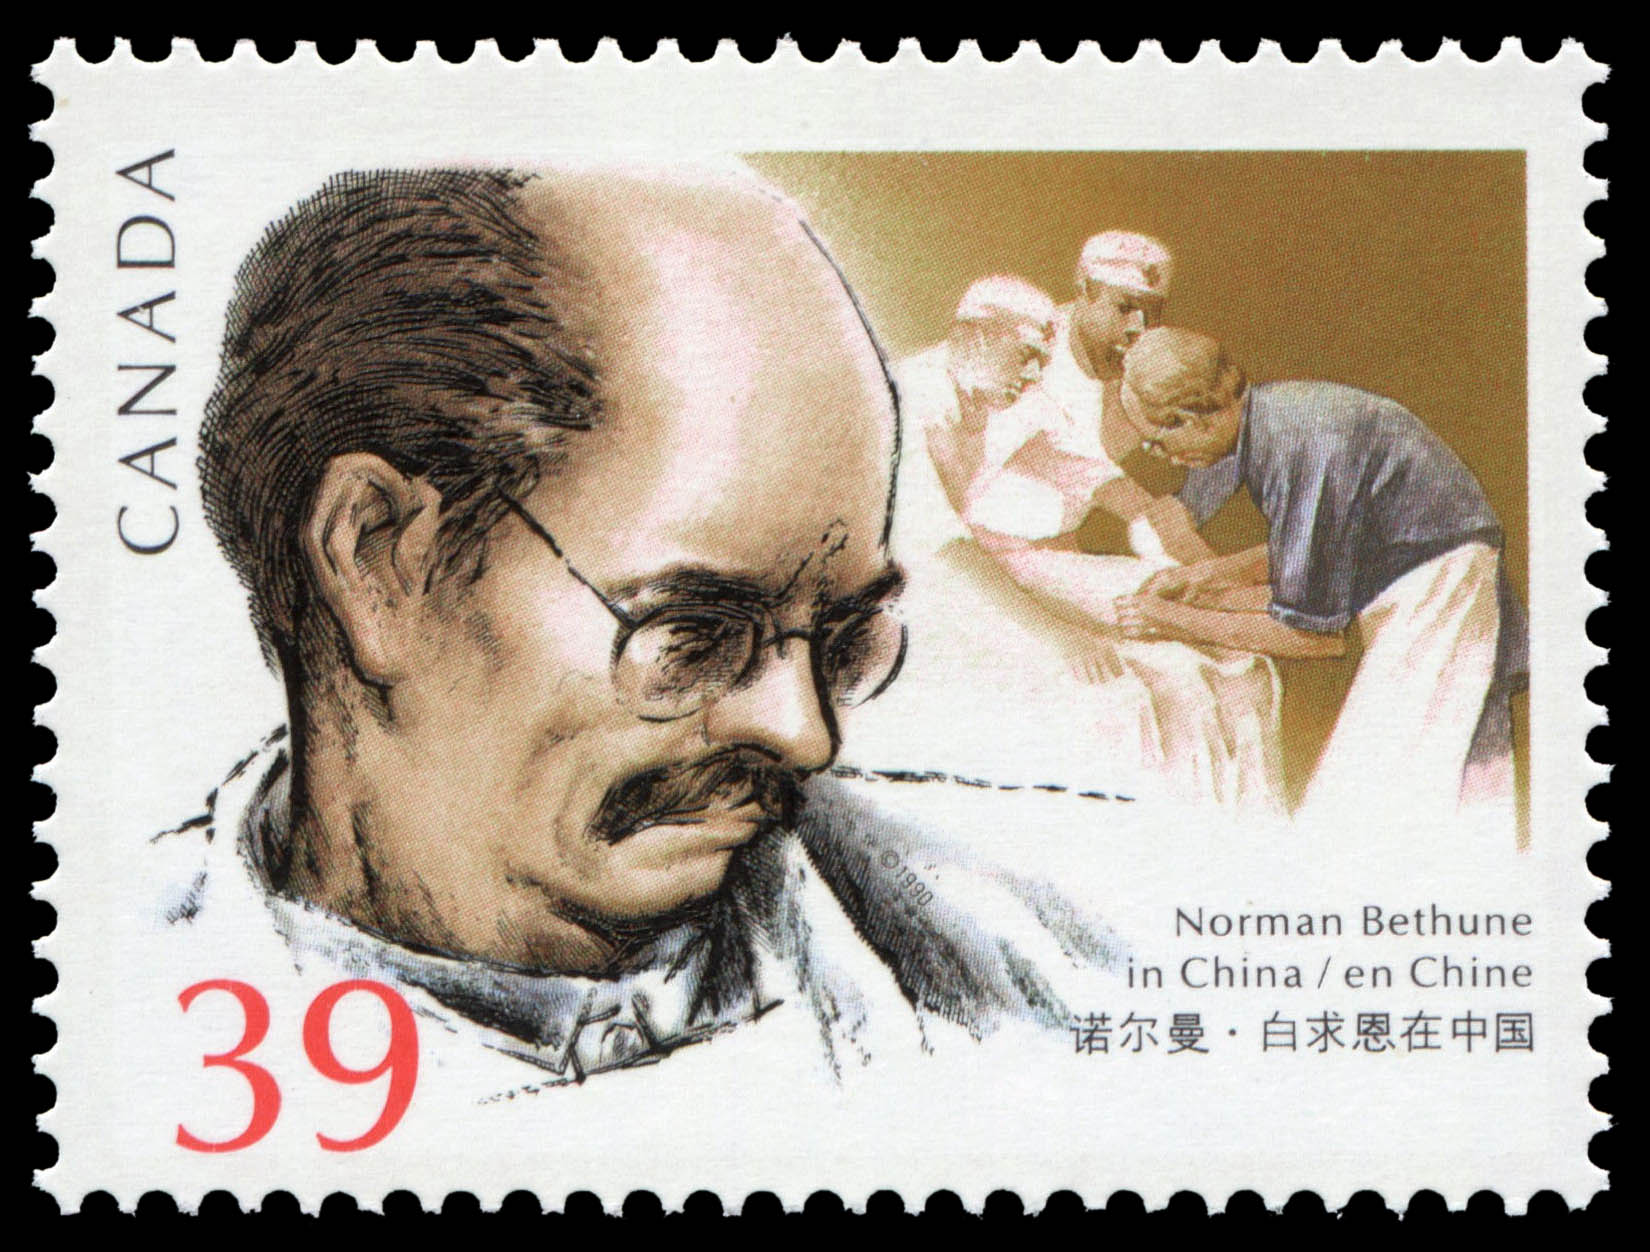 Norman Bethune in China Canada Postage Stamp